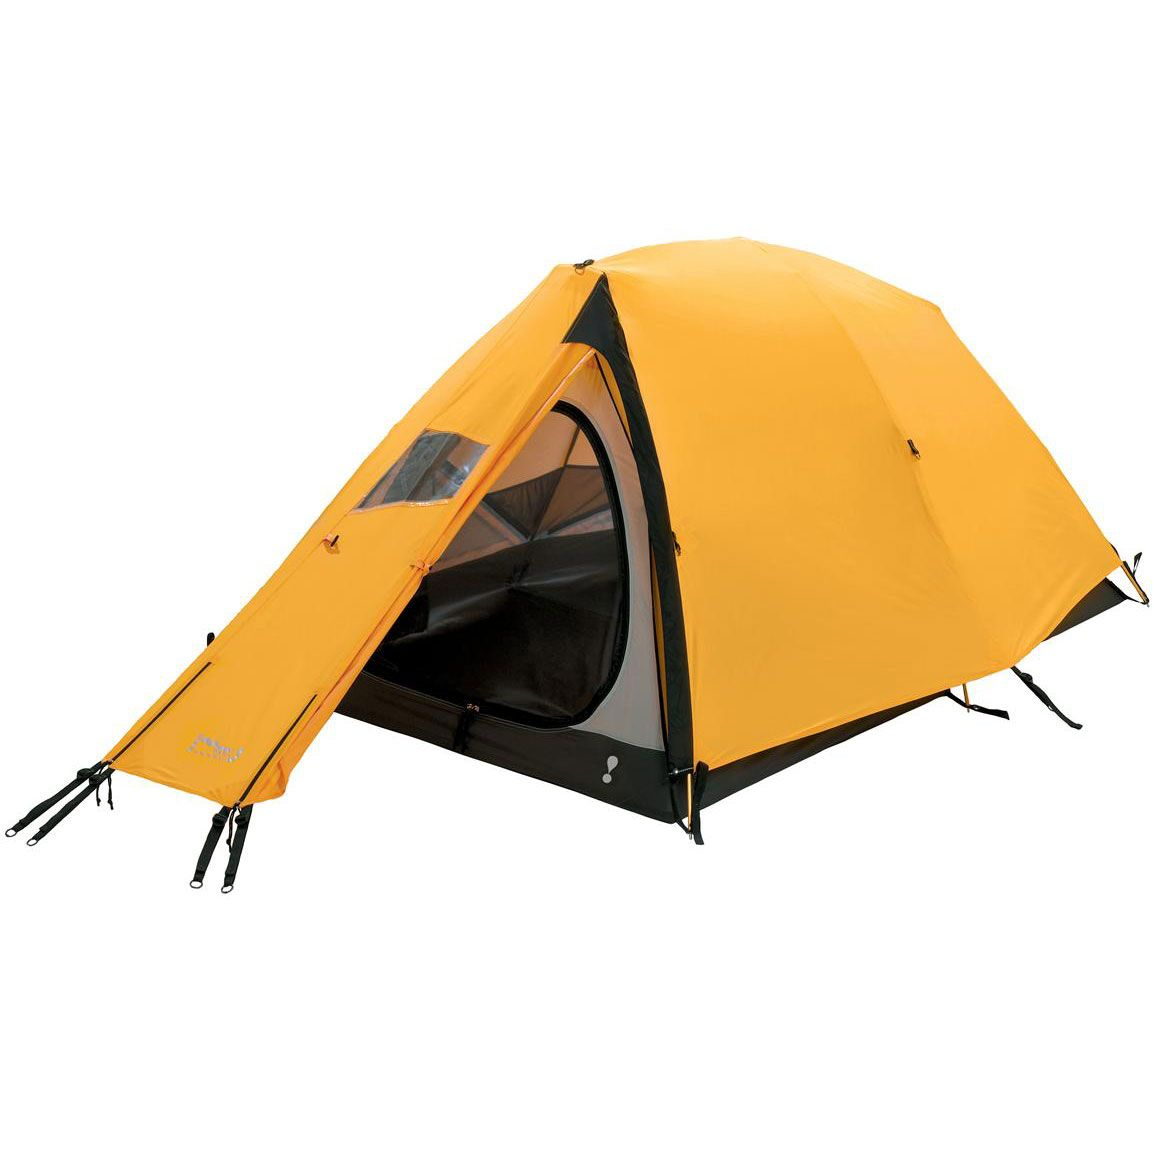 EUREKA Alpenlite XT Tent. 2 person 4 season tent.  sc 1 st  Pinterest & EUREKA Alpenlite XT Tent. 2 person 4 season tent. | Prepping ...